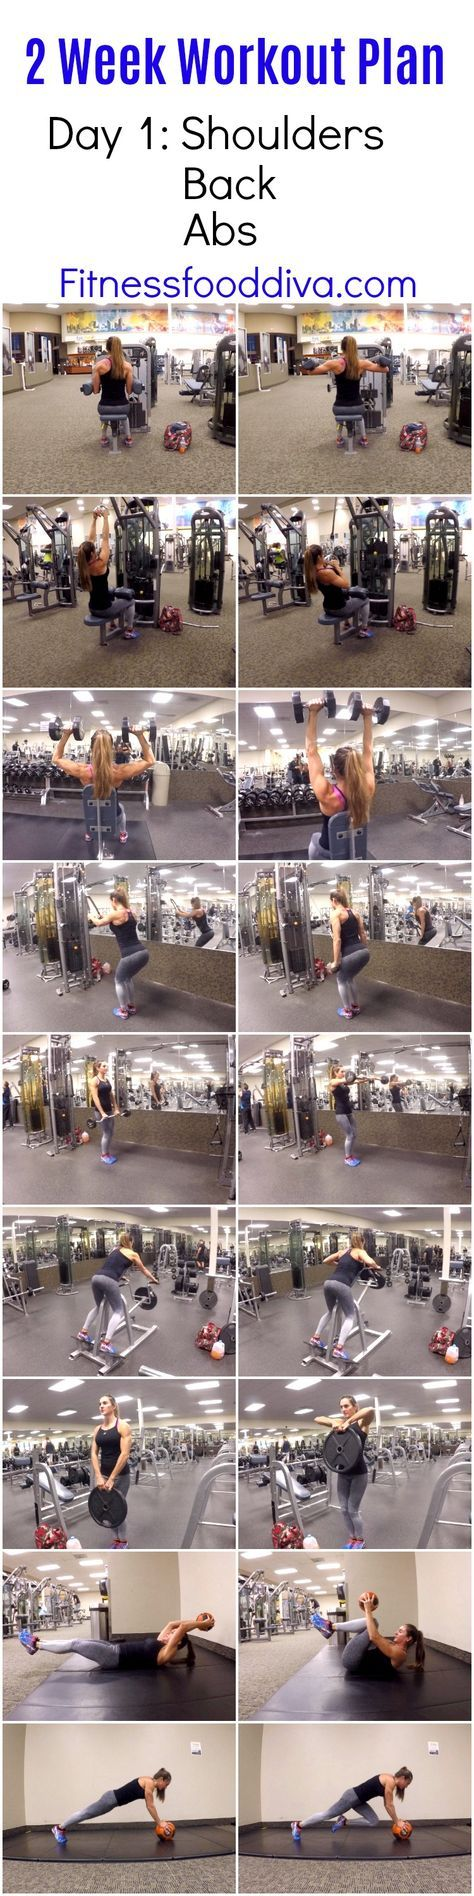 Shoulders, Back, and Abs Workout | Posted By: CustomWeightLossProgram.com